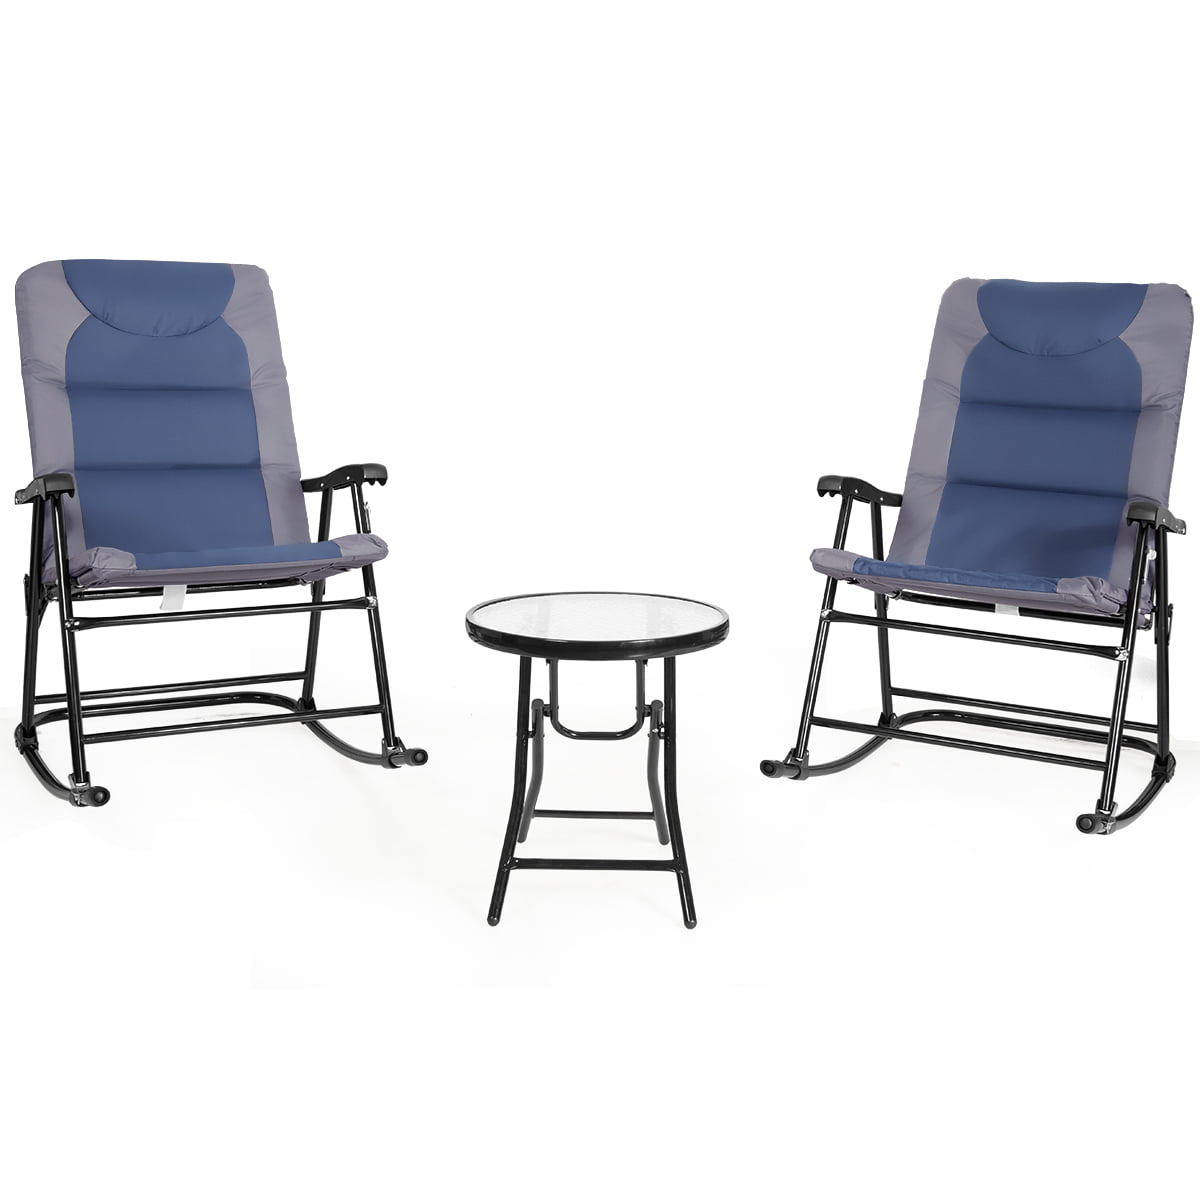 Costway 3 Piece Folding Bistro Set, Outdoor Rocking Chairs Set Of 2